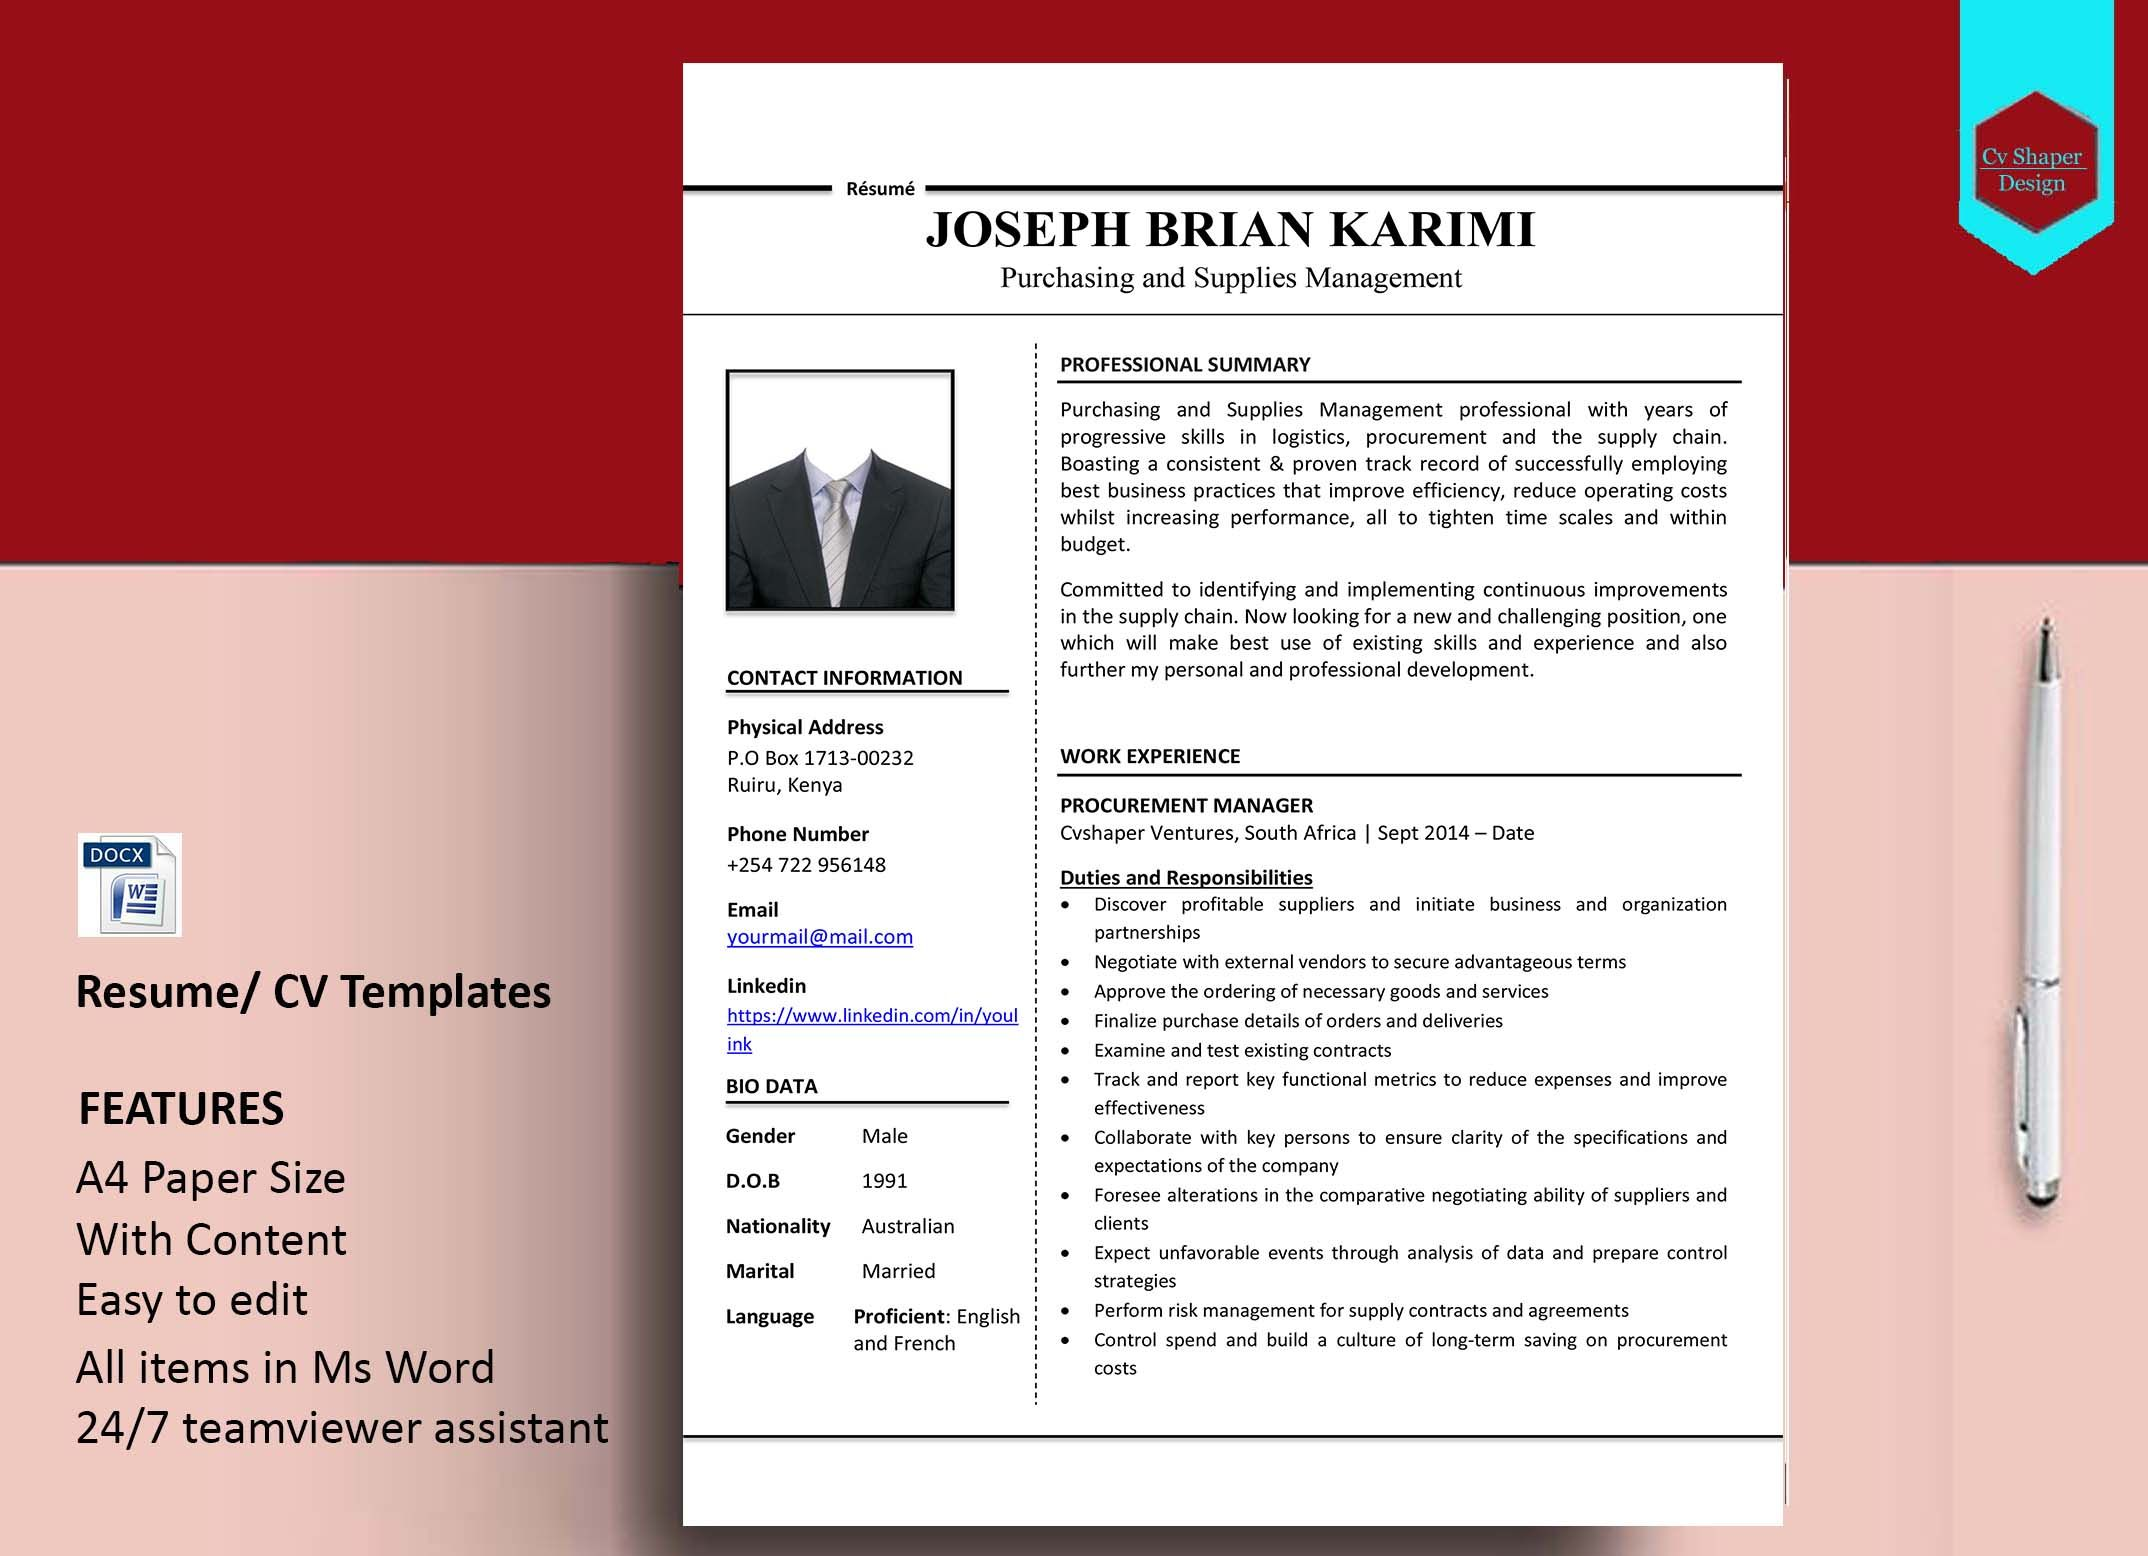 Free online resume maker, make a resume in 5 minutes http